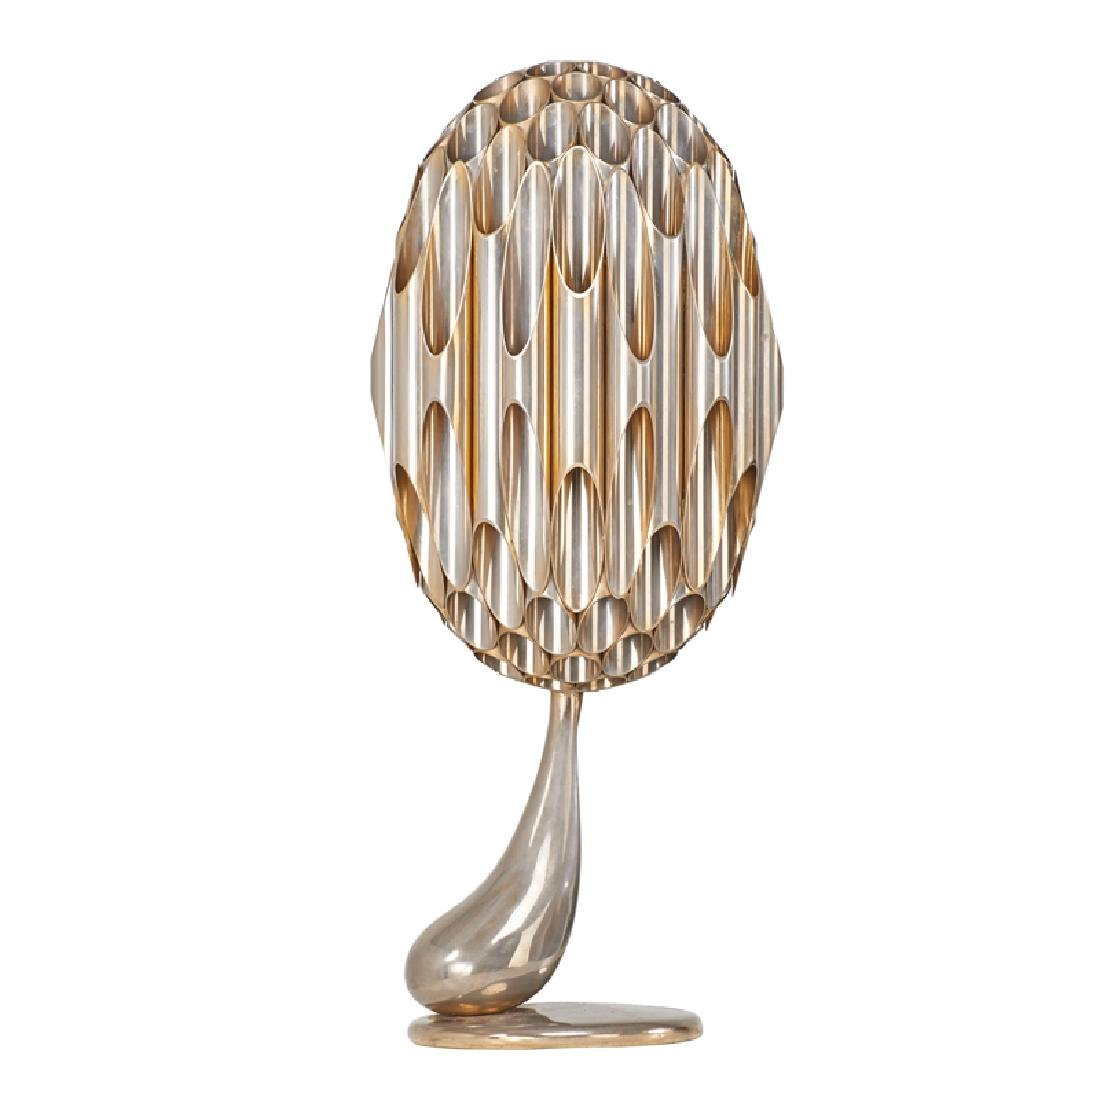 MAISON CHARLES MORILLE (attr.) Table lamp